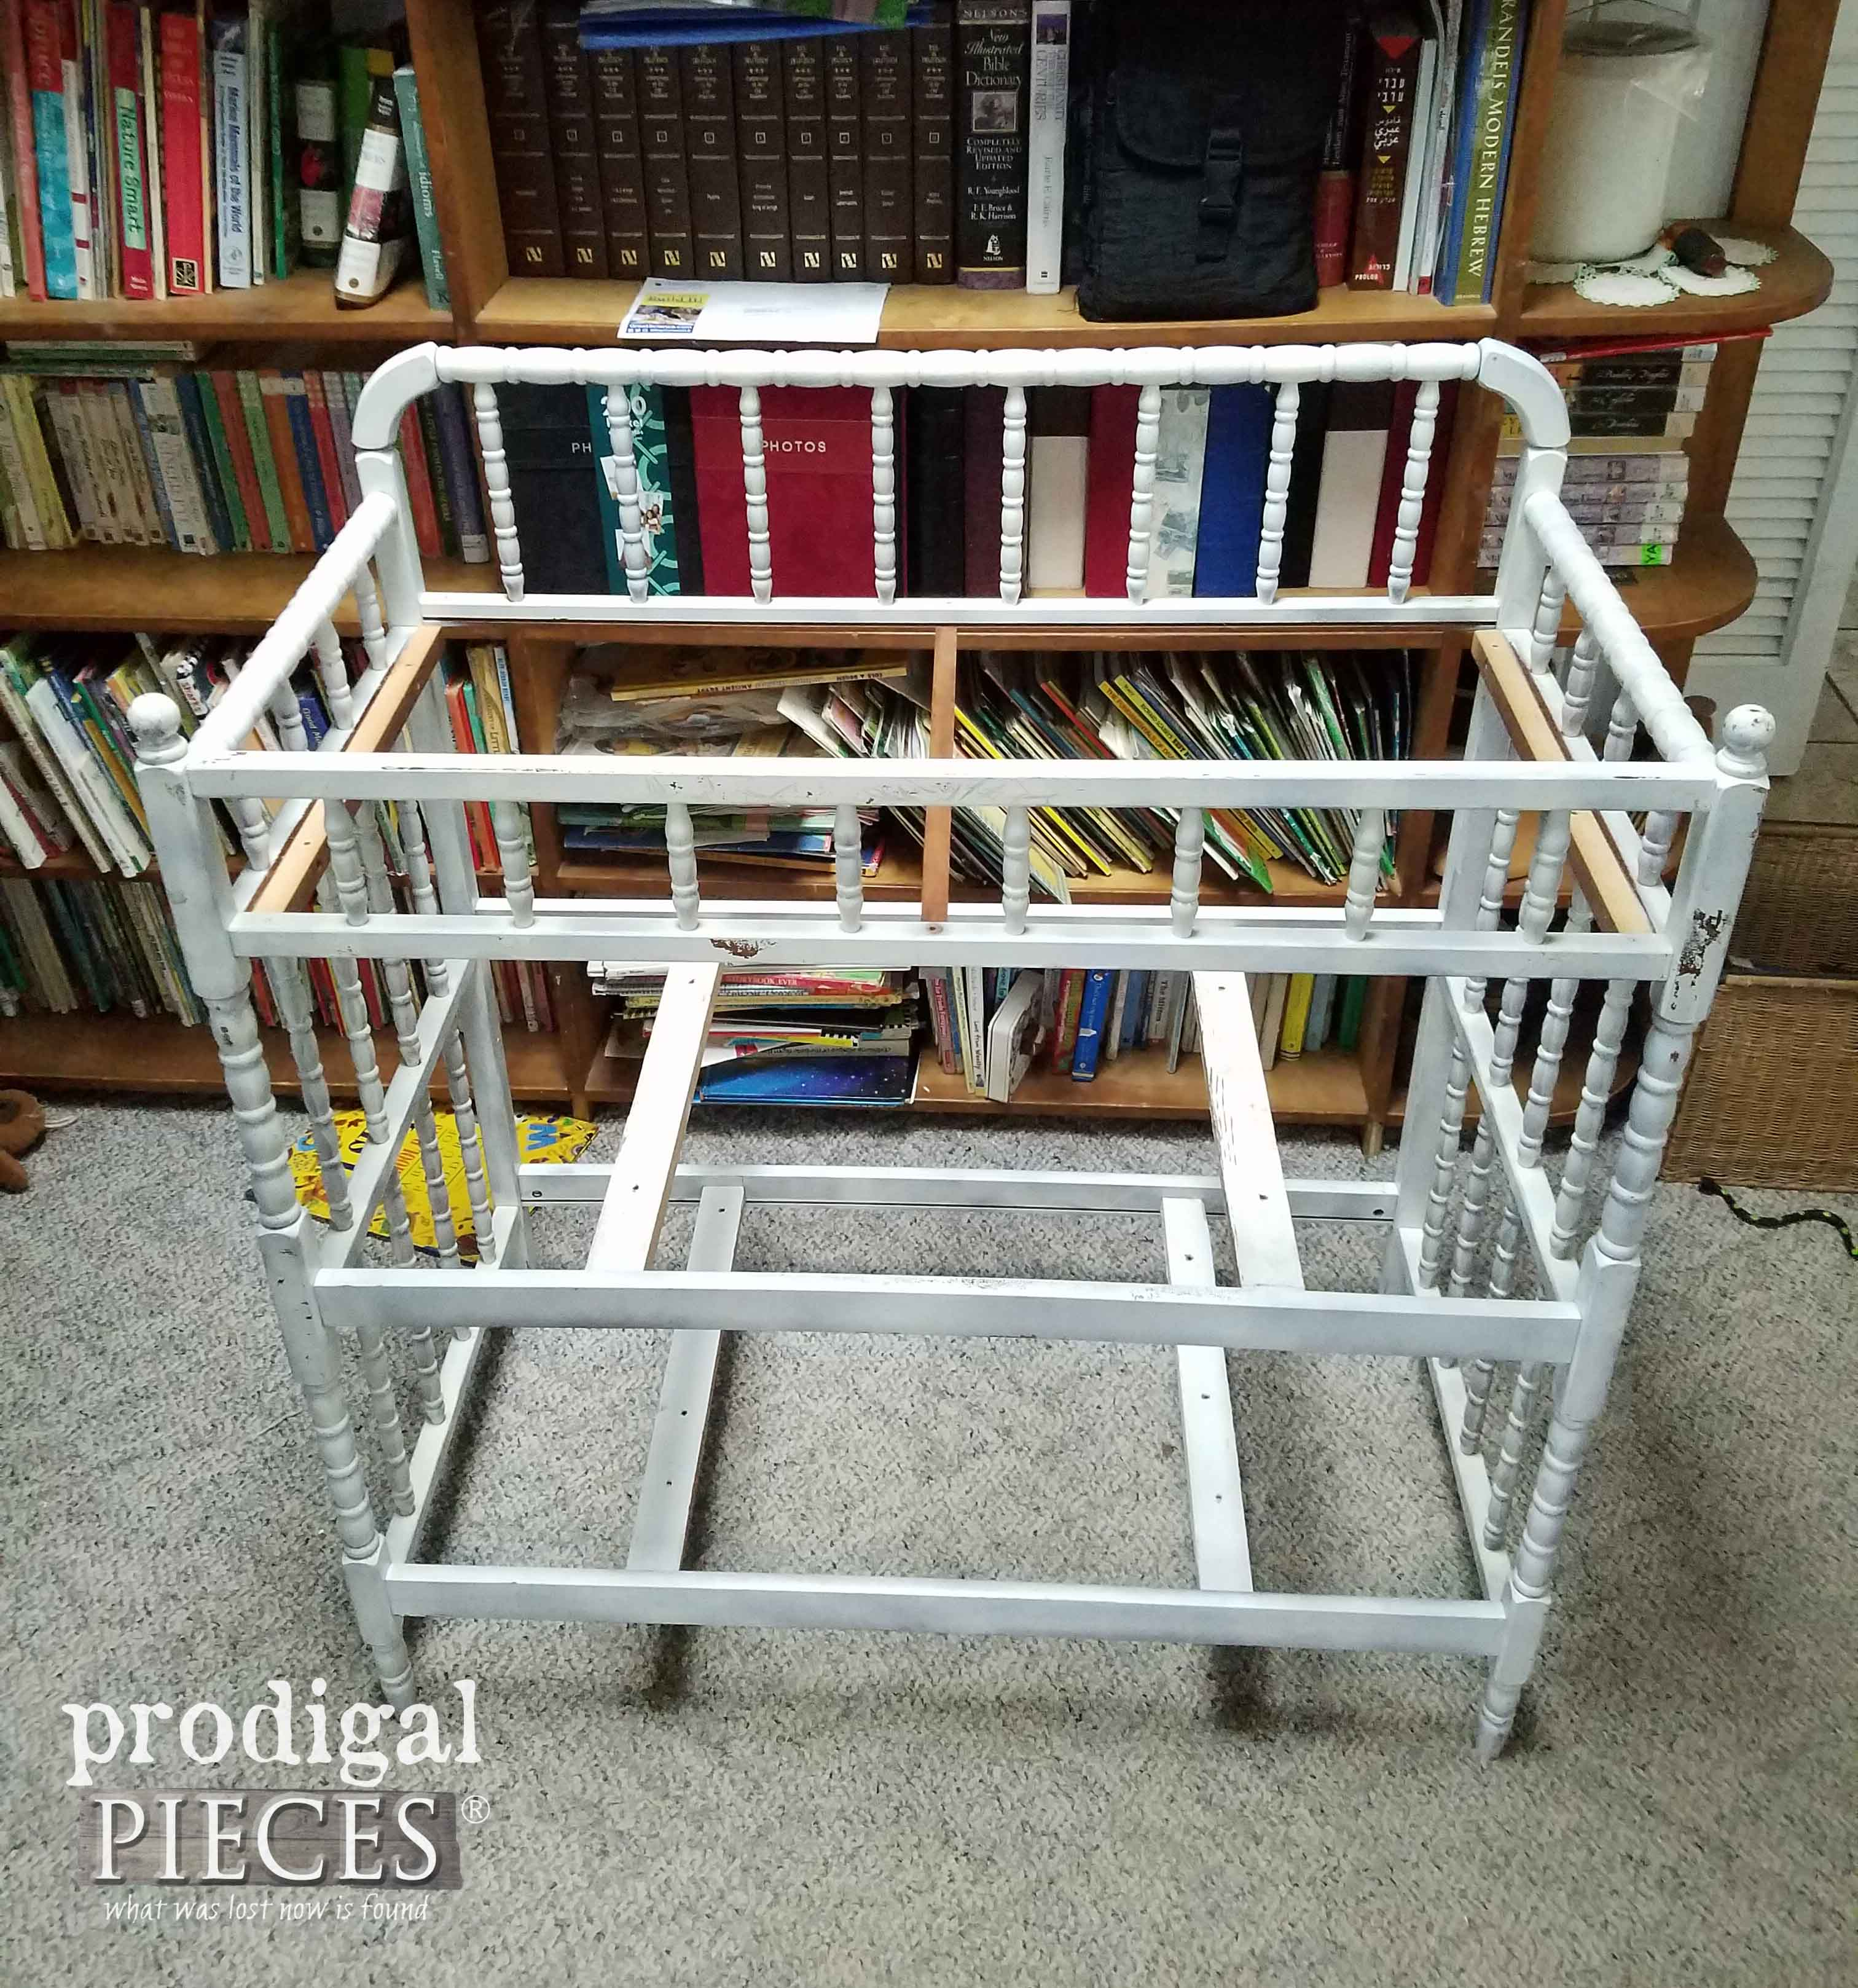 Beefed Up Repurposed Changing Table for Potting Bench by Prodigal Pieces | prodigalpieces.com